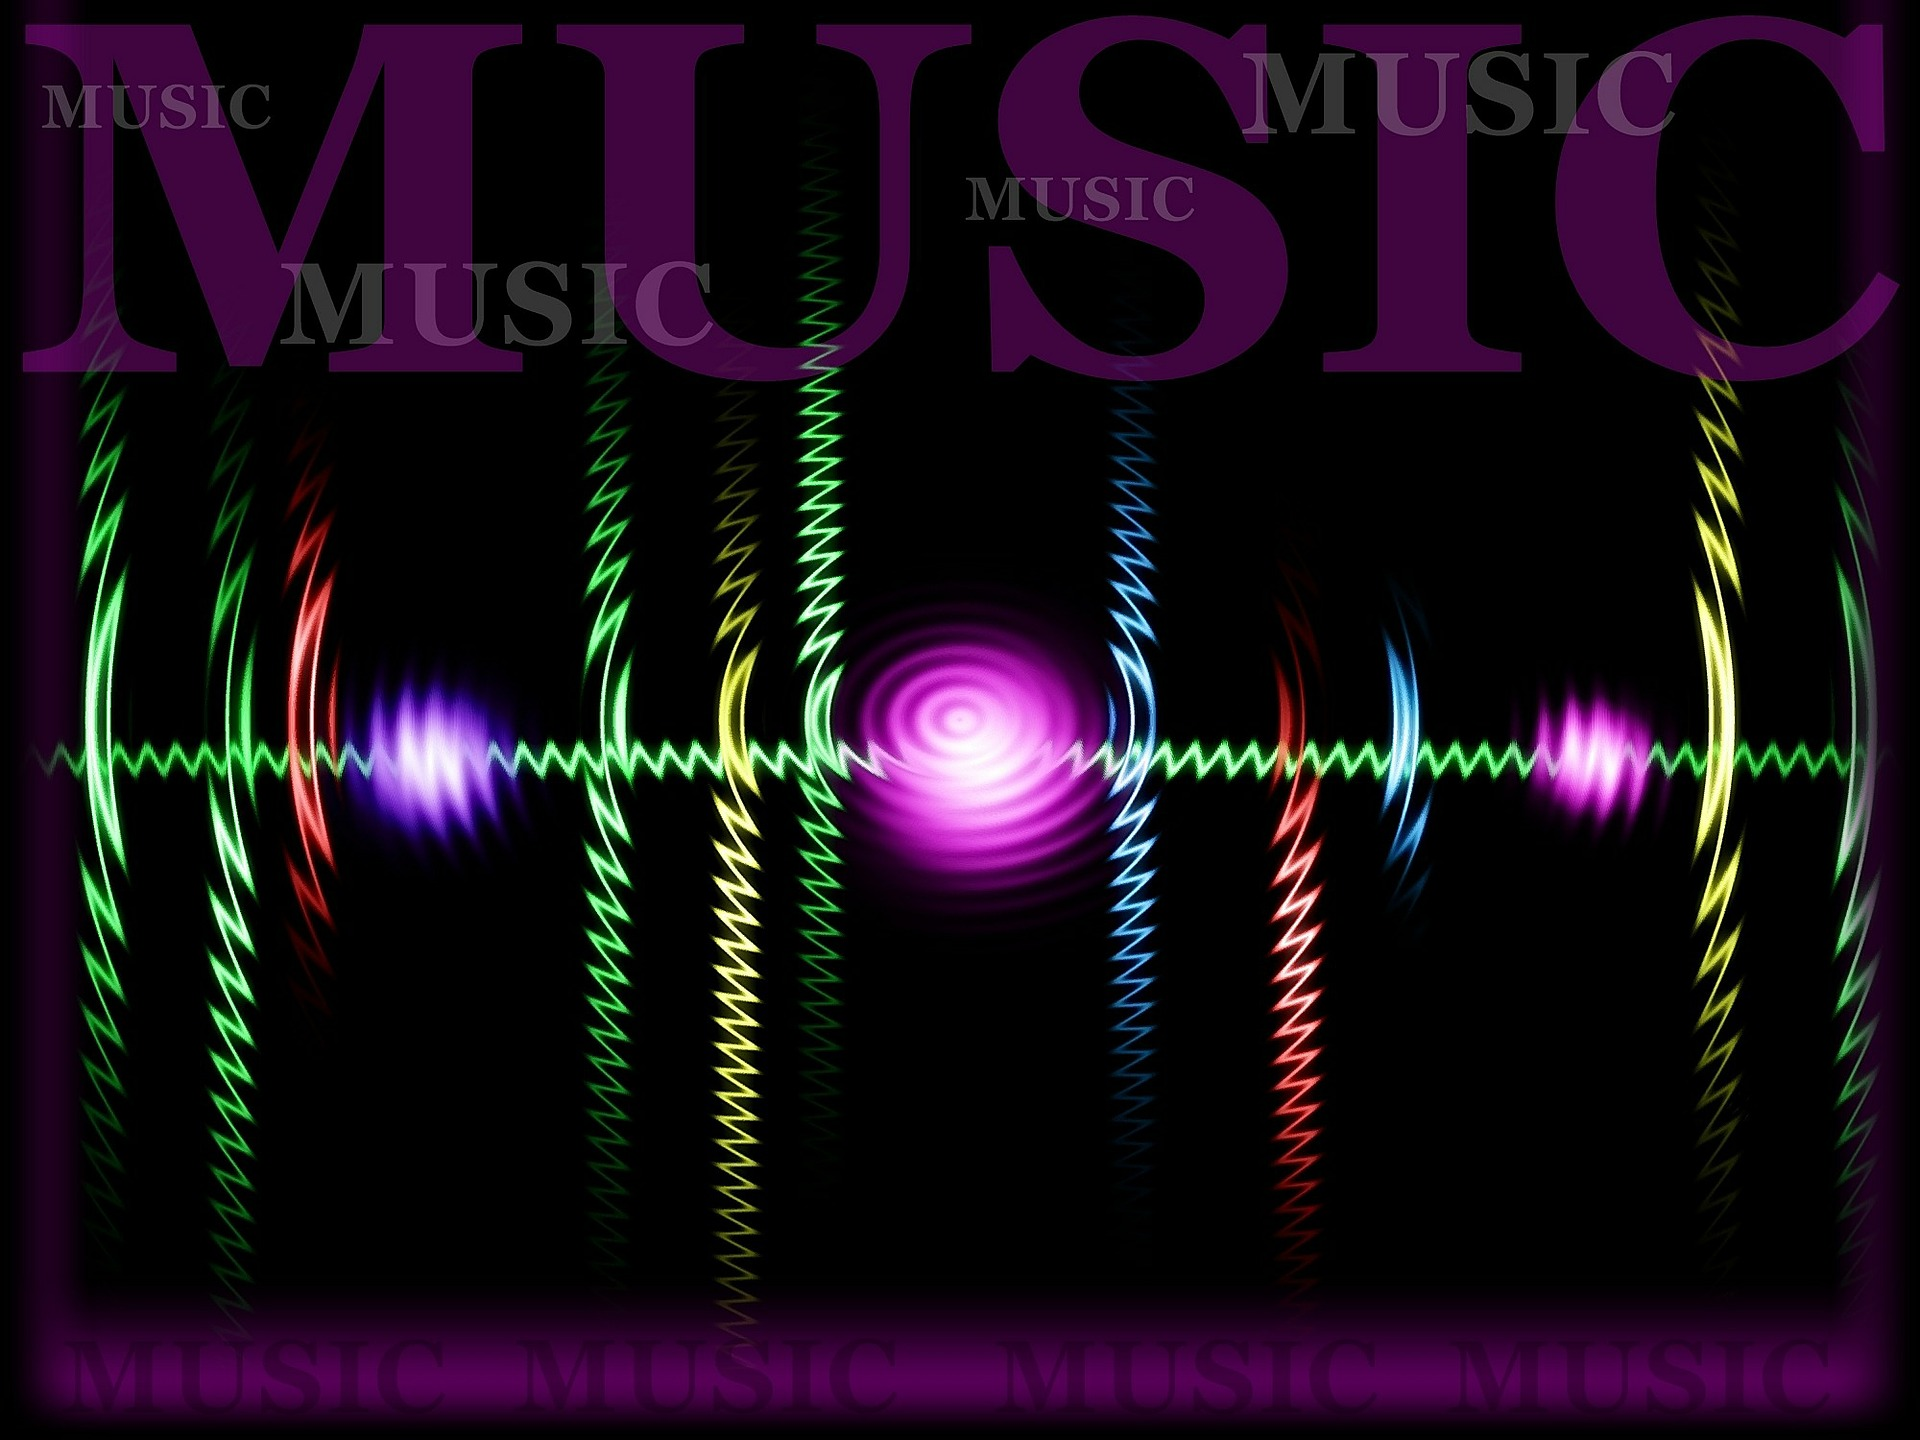 An illustration with the word music, frequencies, and several bright colors.